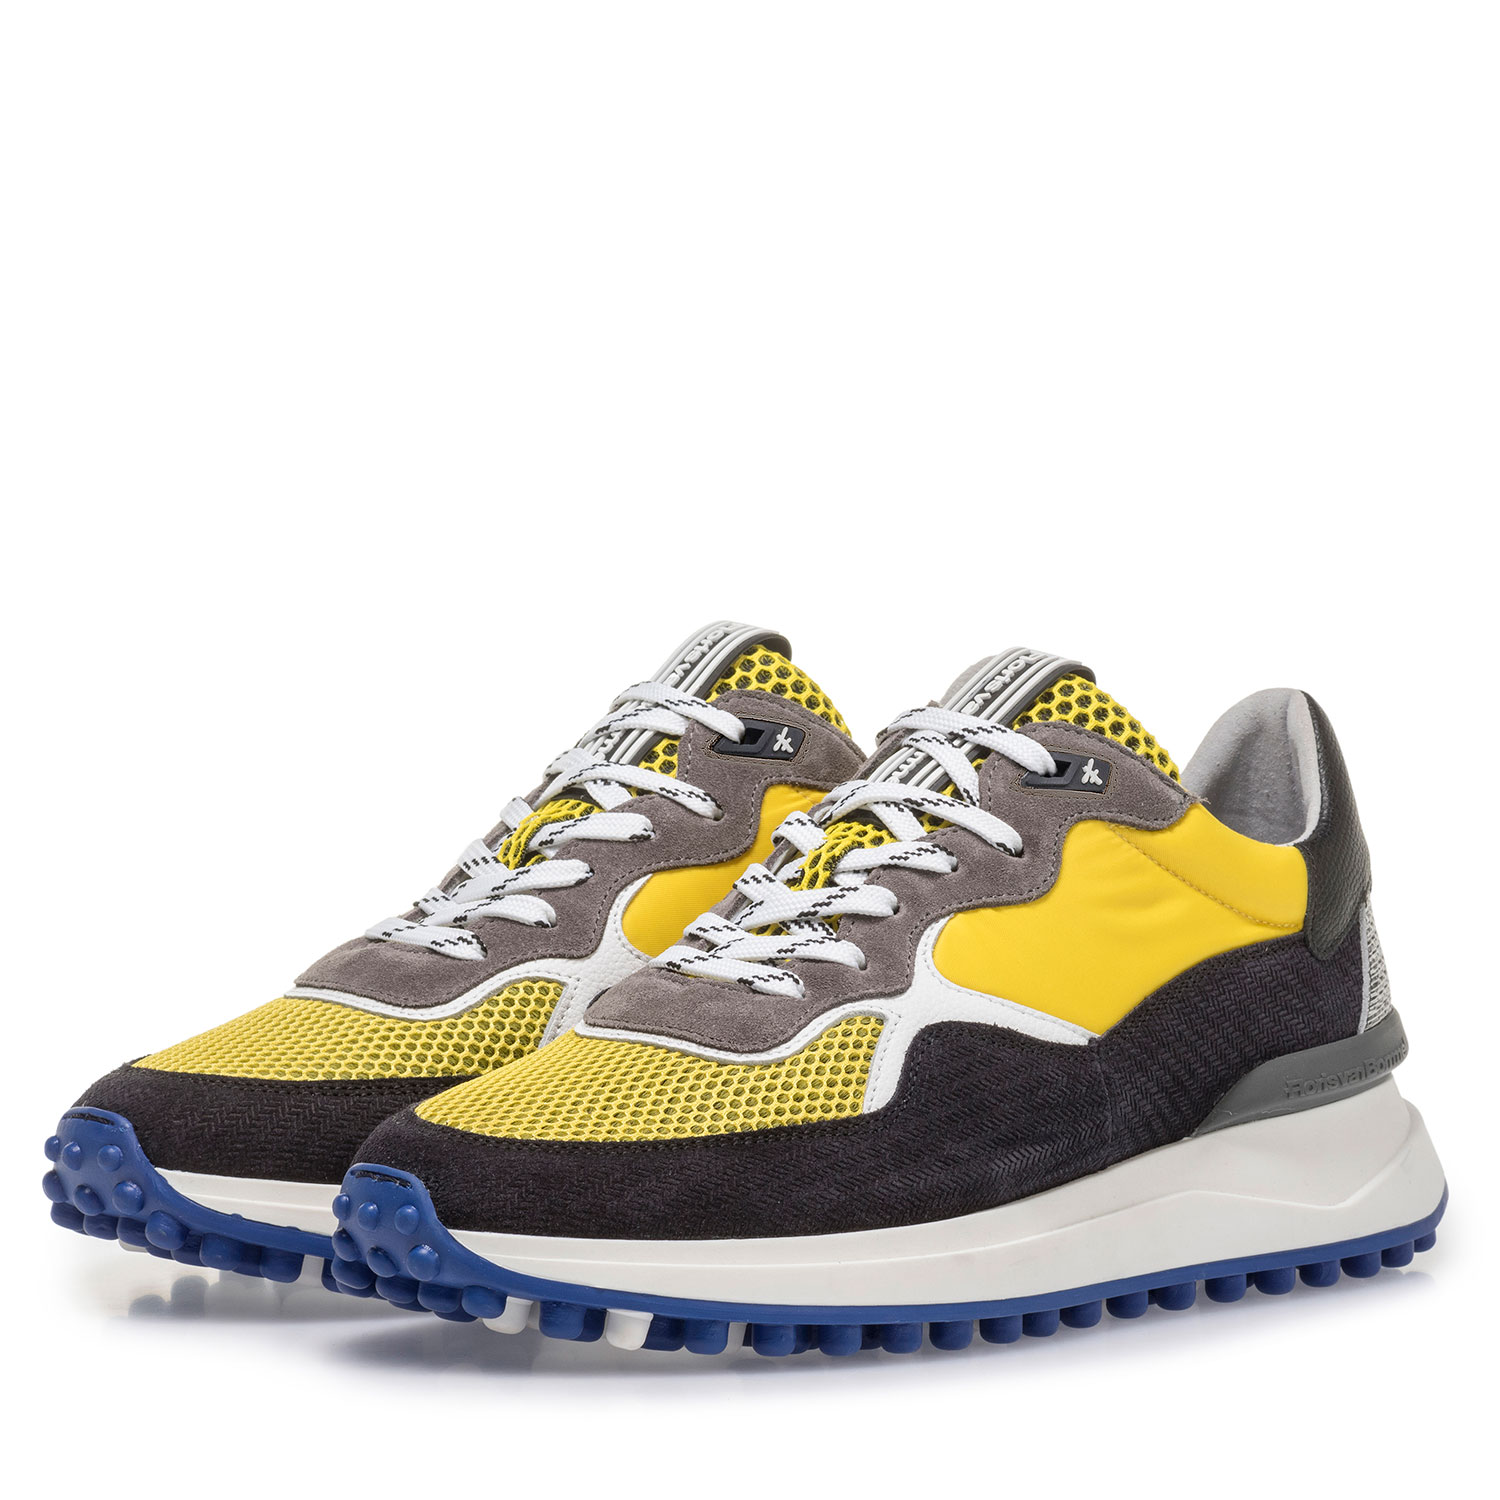 16301/07 - Multi-colour suede leather sneaker with yellow details